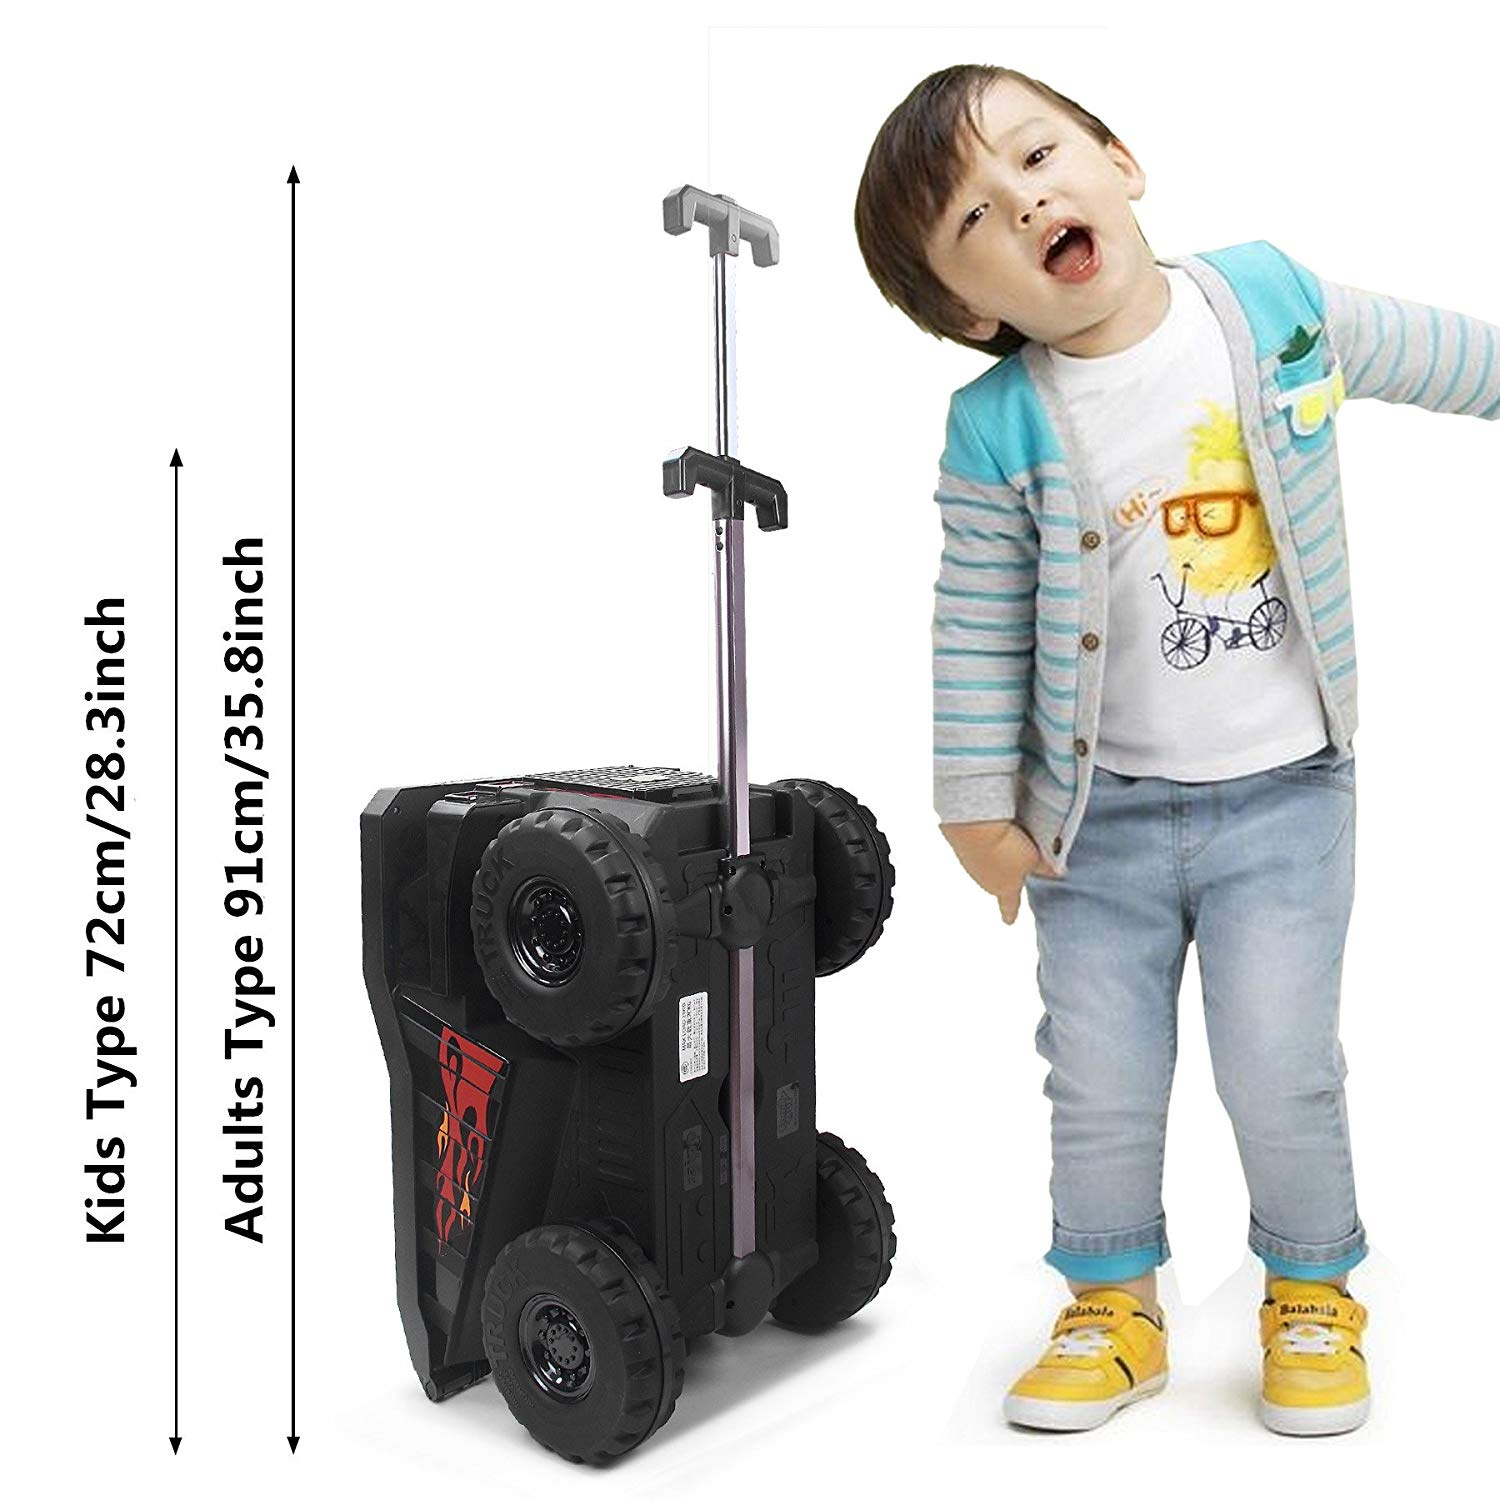 76ce89c6a6a6 Ride-On Toy Box ,PUQU MiningTruck Toy Travel Luggage Storage Case With Pull  Strap